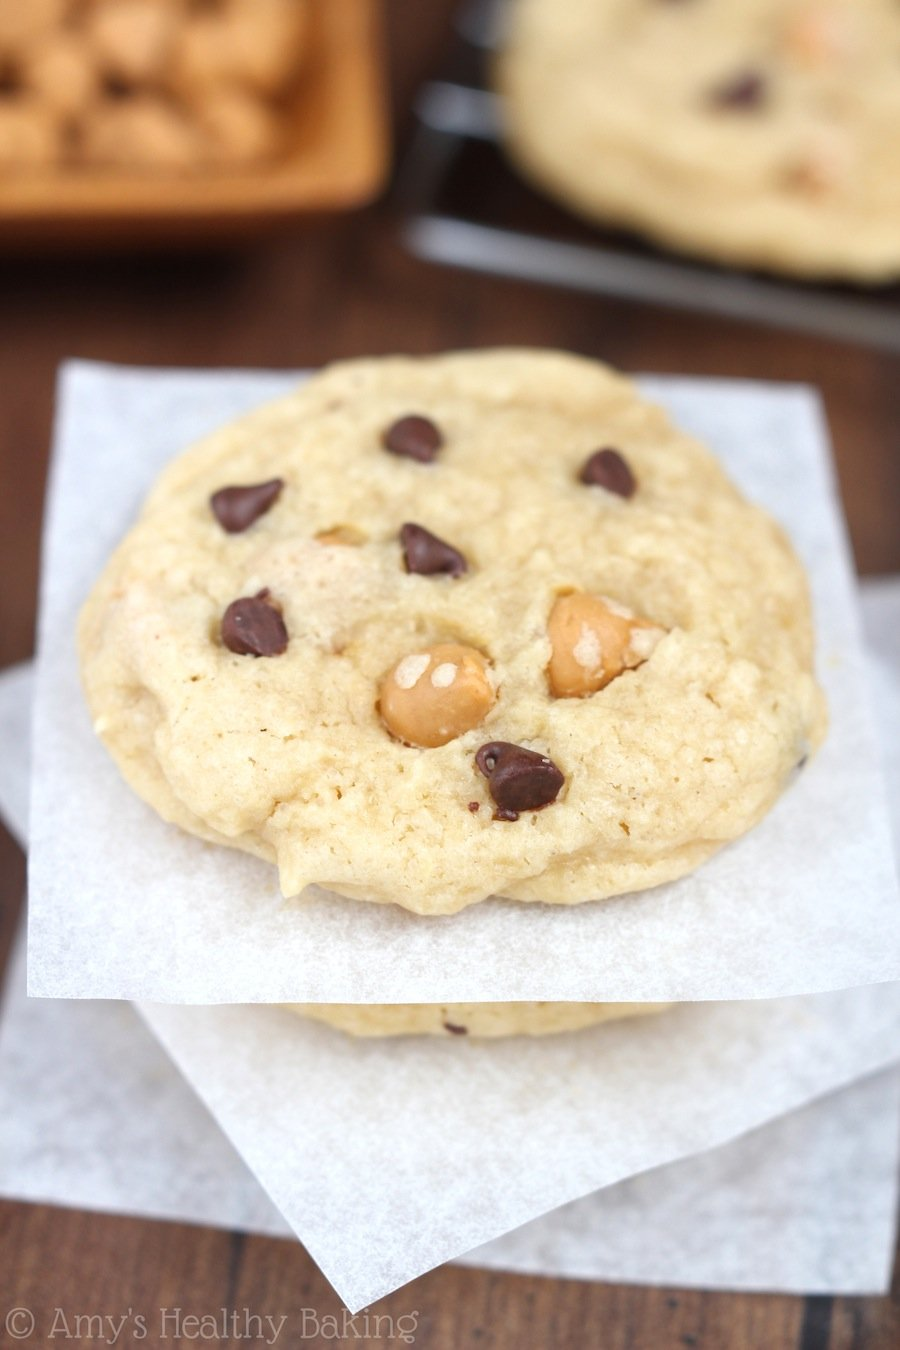 Butterscotch Chocolate Chip Cookies | Amy's Healthy Baking